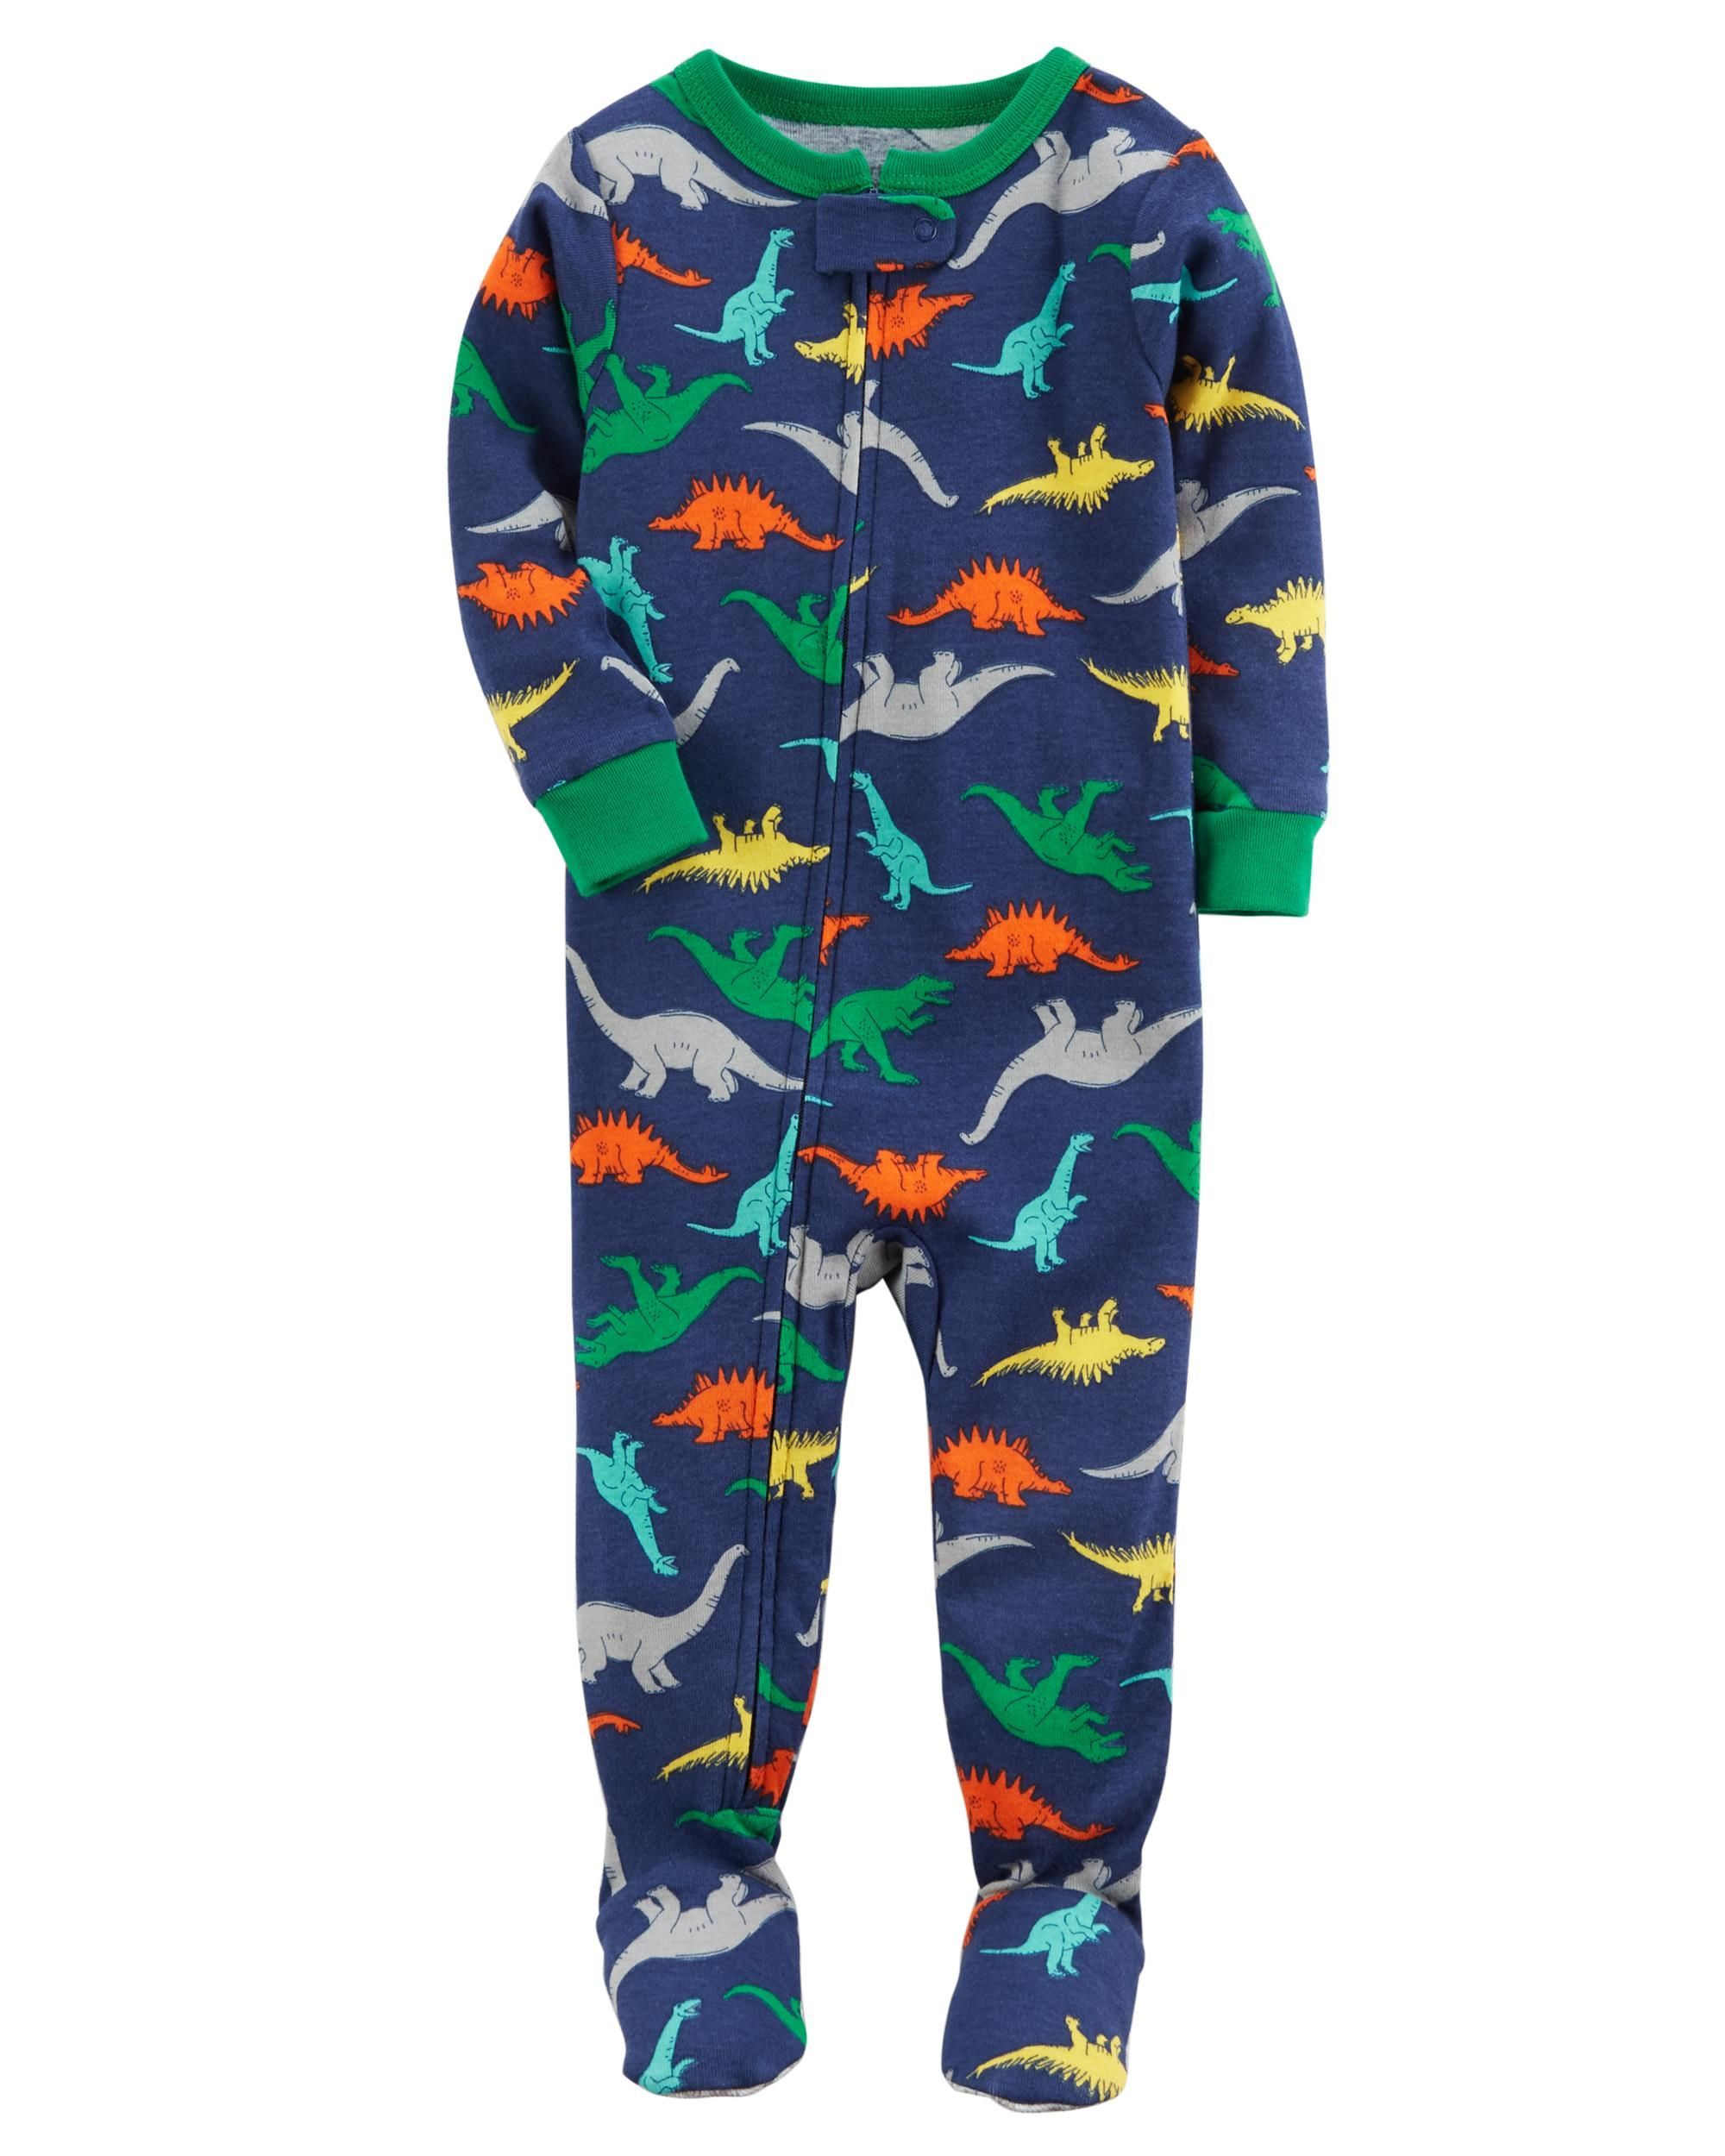 6a1f71d1d 1-Piece Dinosaur Snug Fit Cotton PJs